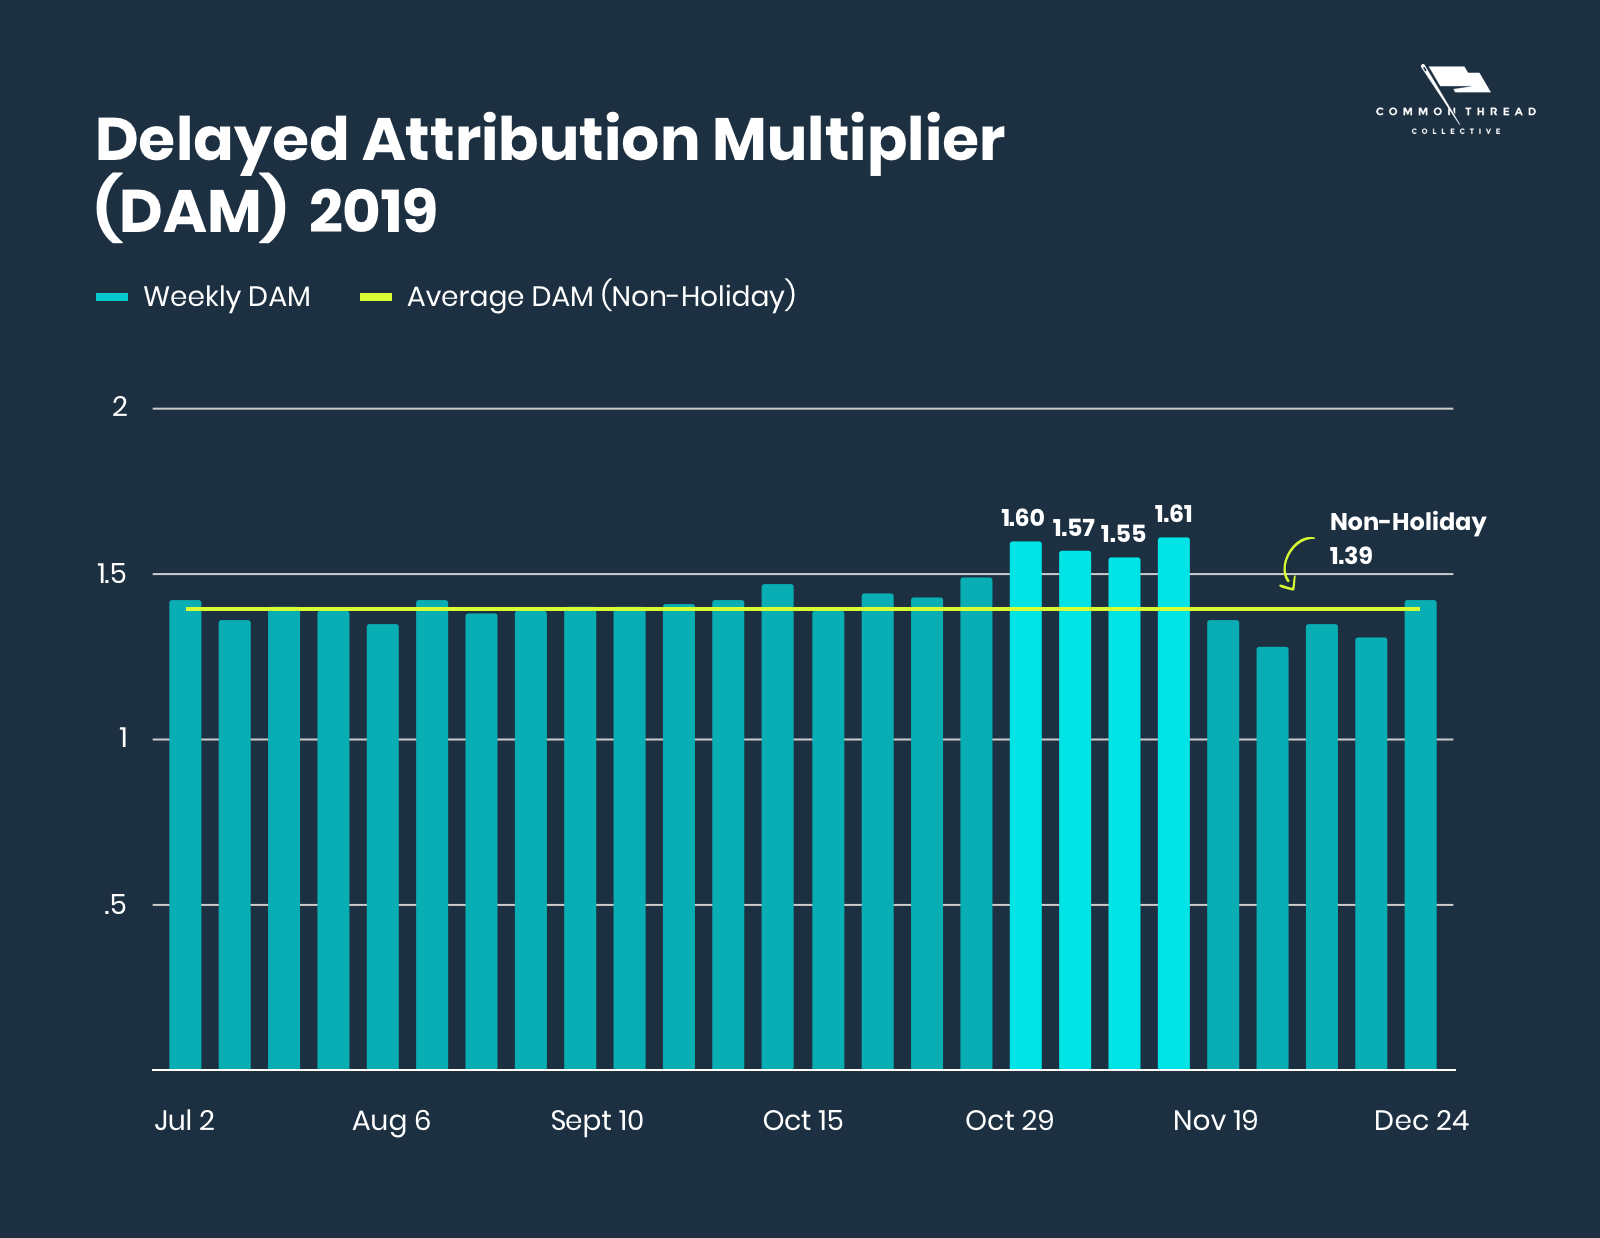 Delayed Attribution Multiplier (DAM) Average over 2019